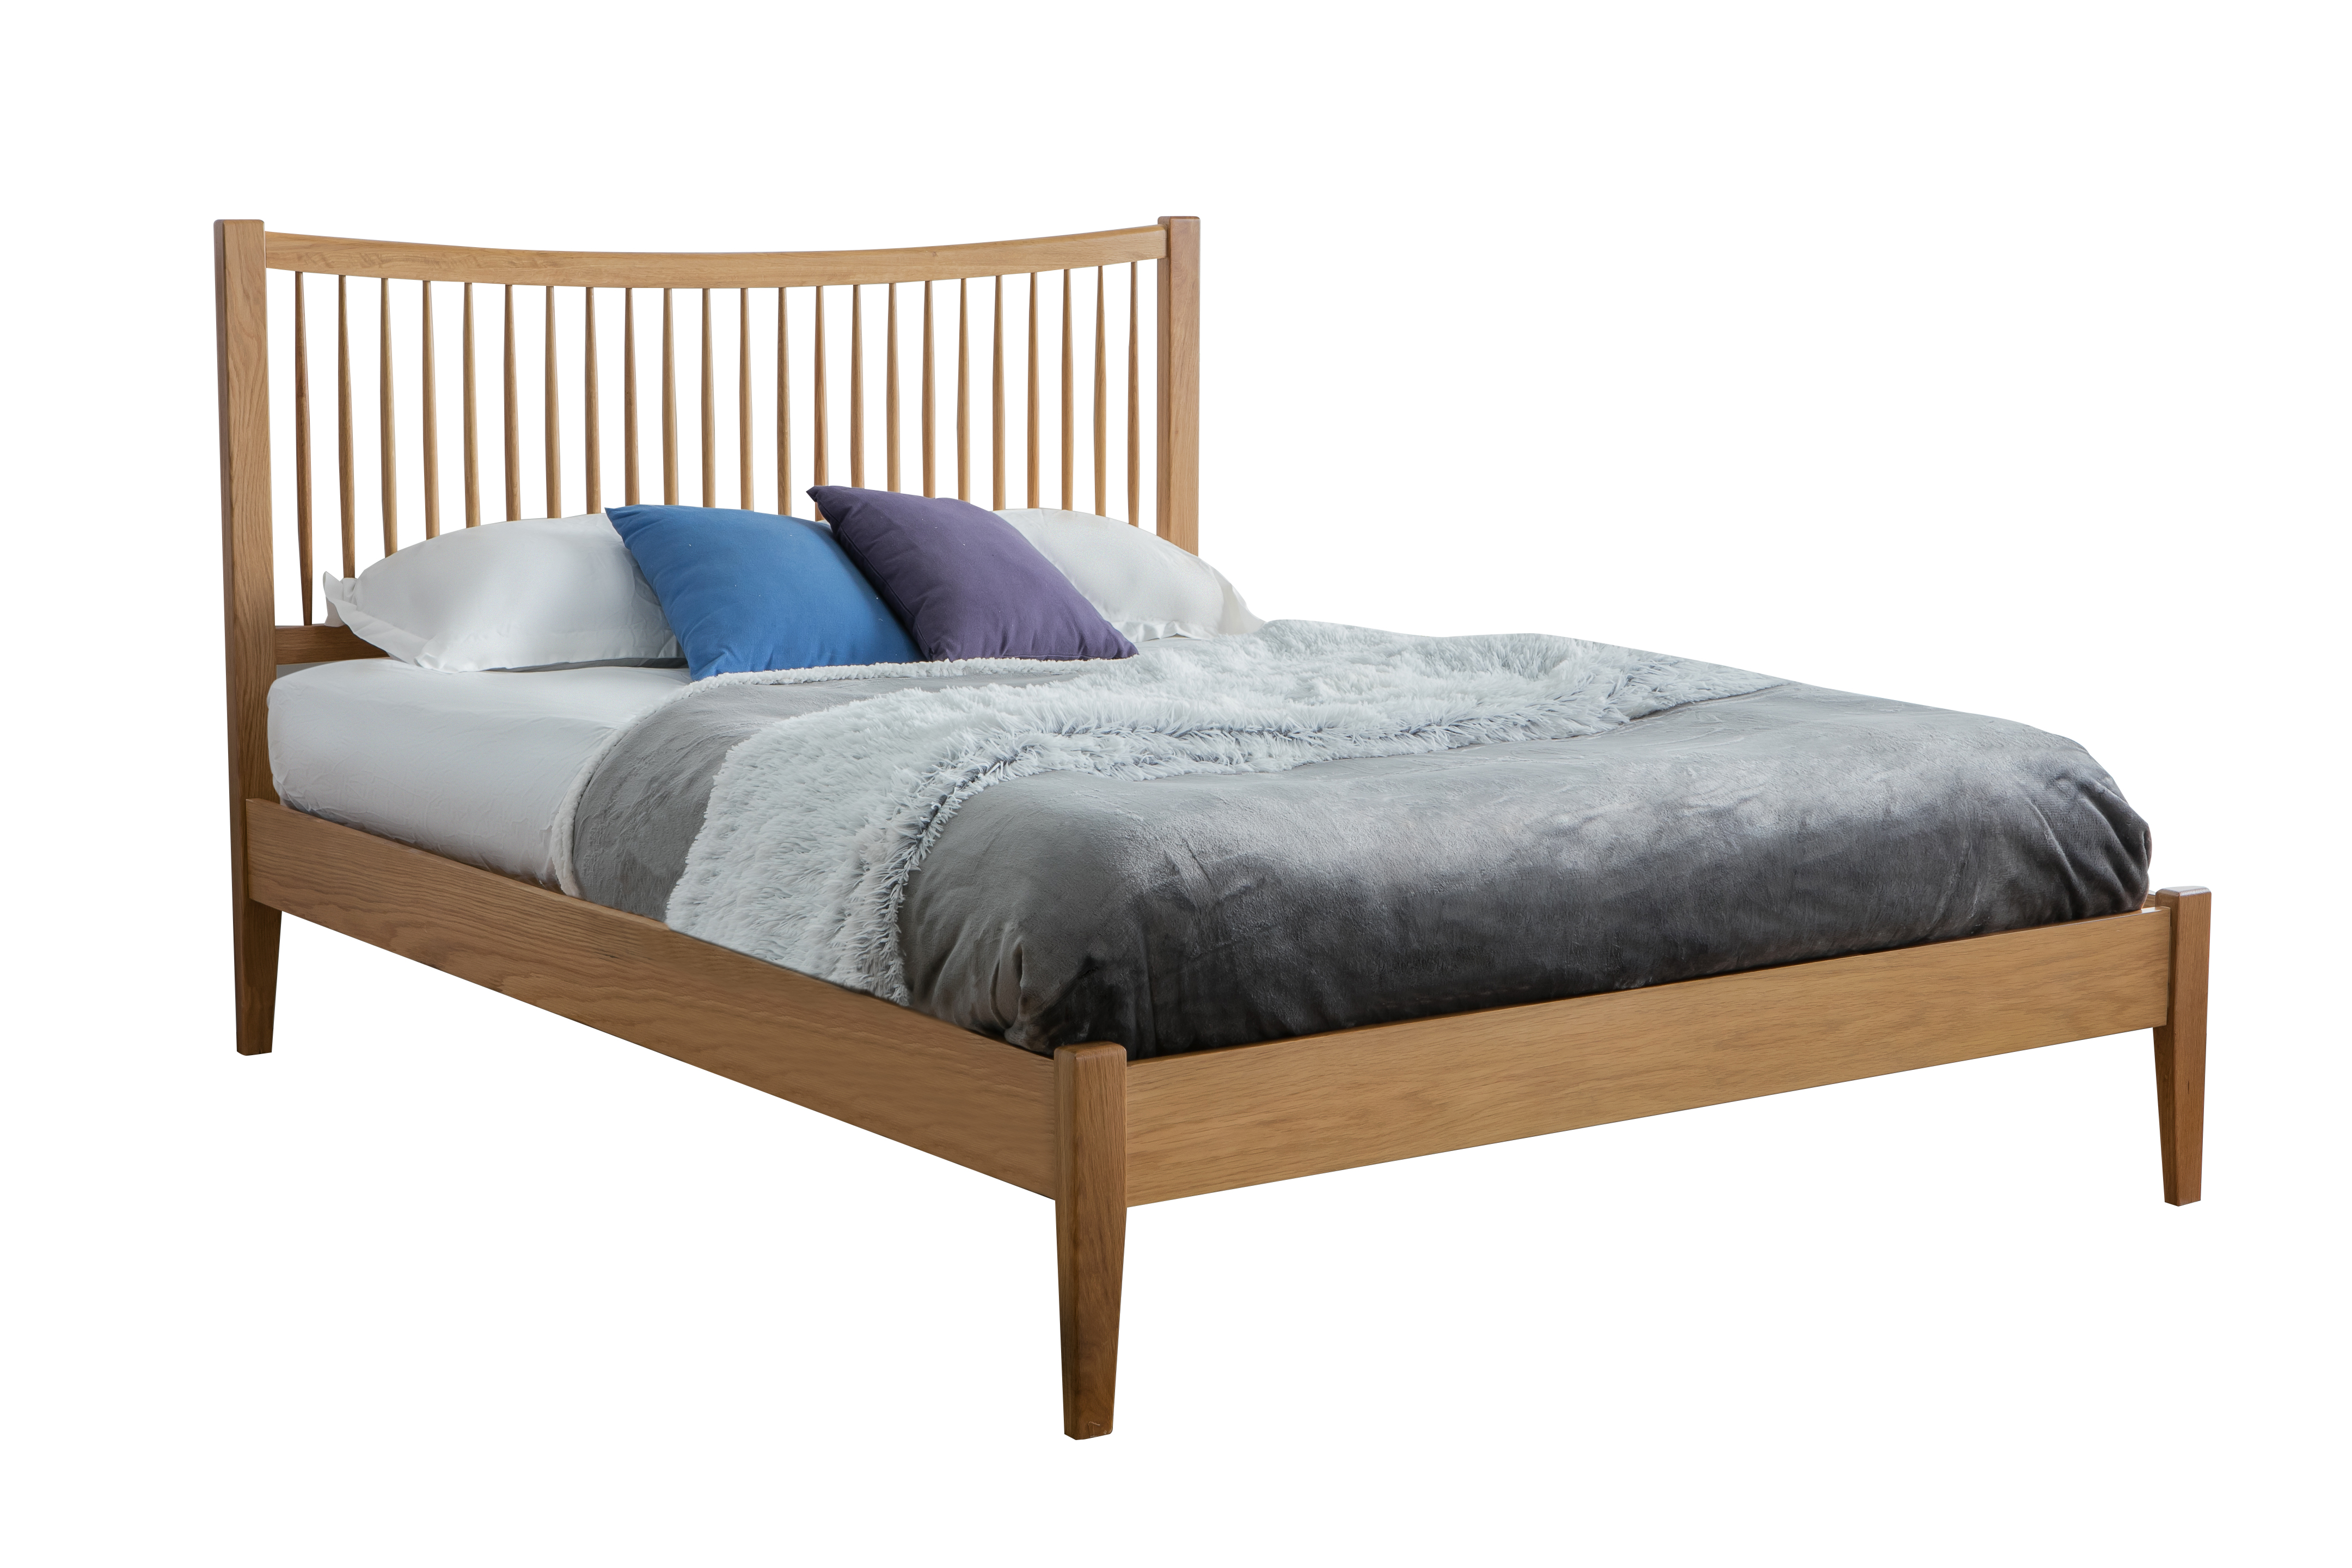 Berwick Solid Oak Wooden Bed Frame from £339